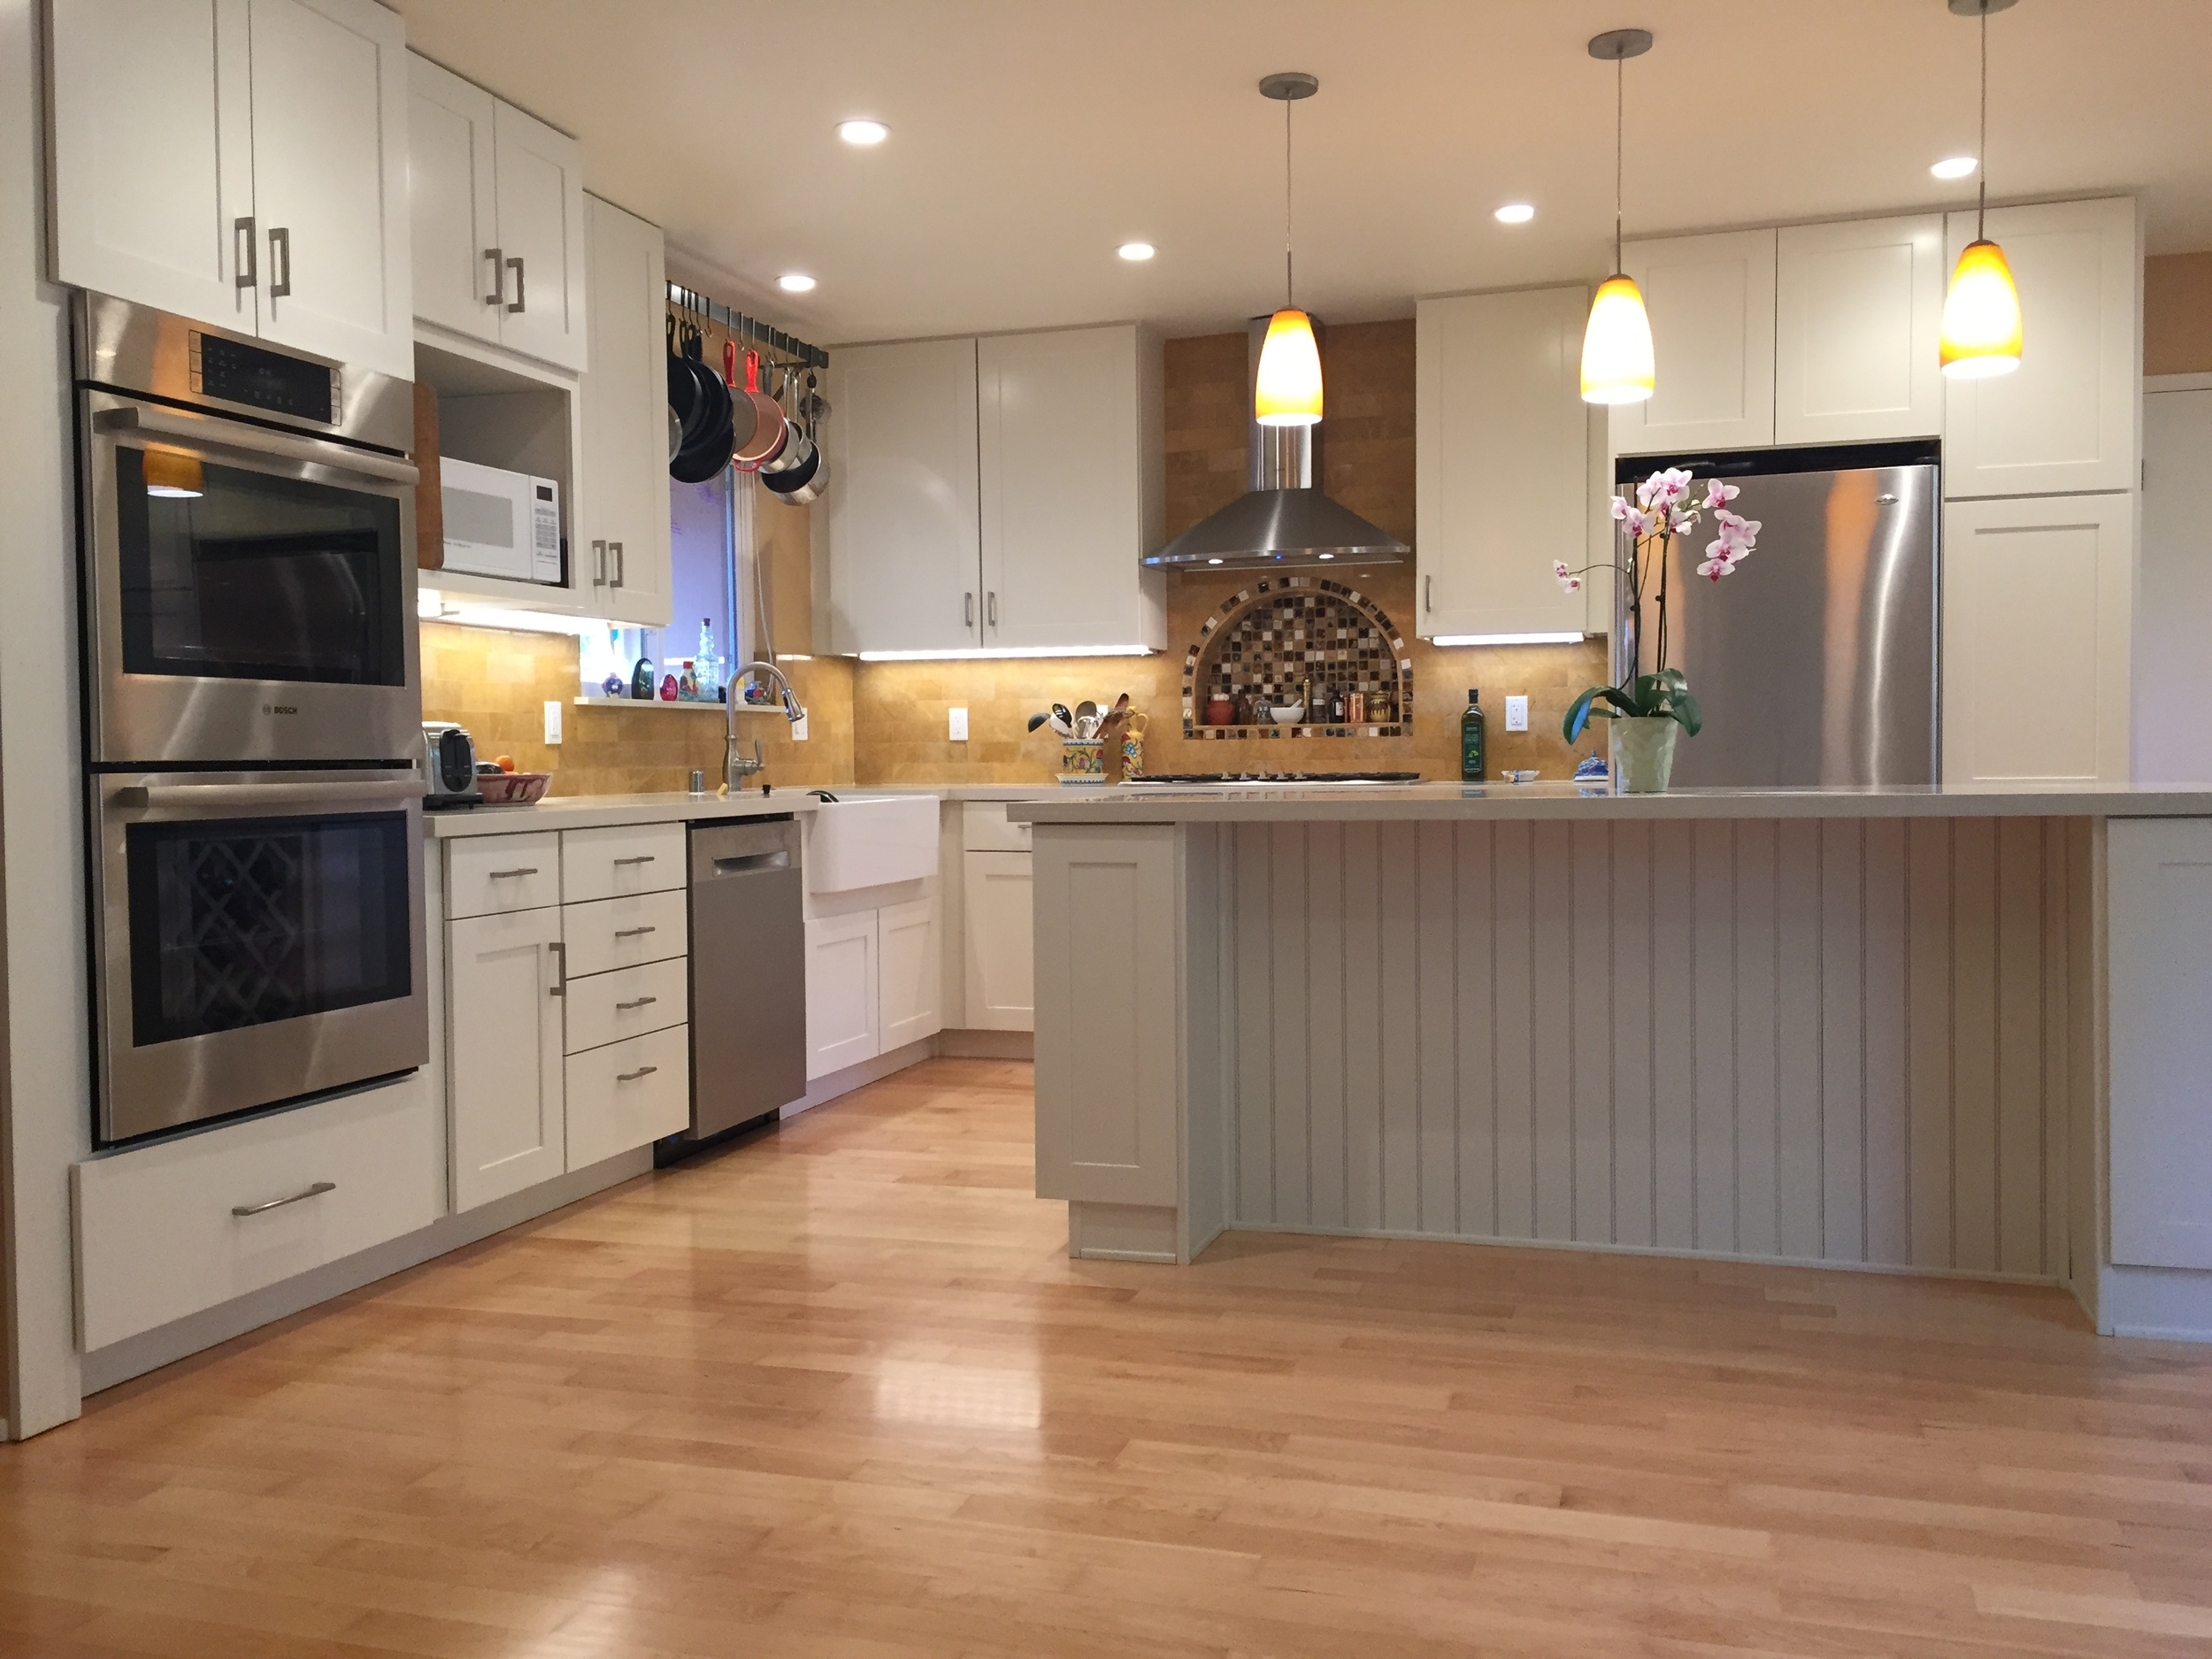 Mill Valley Kitchen Remodel- all new appliances, cabinets, counters, new 8 foot island.